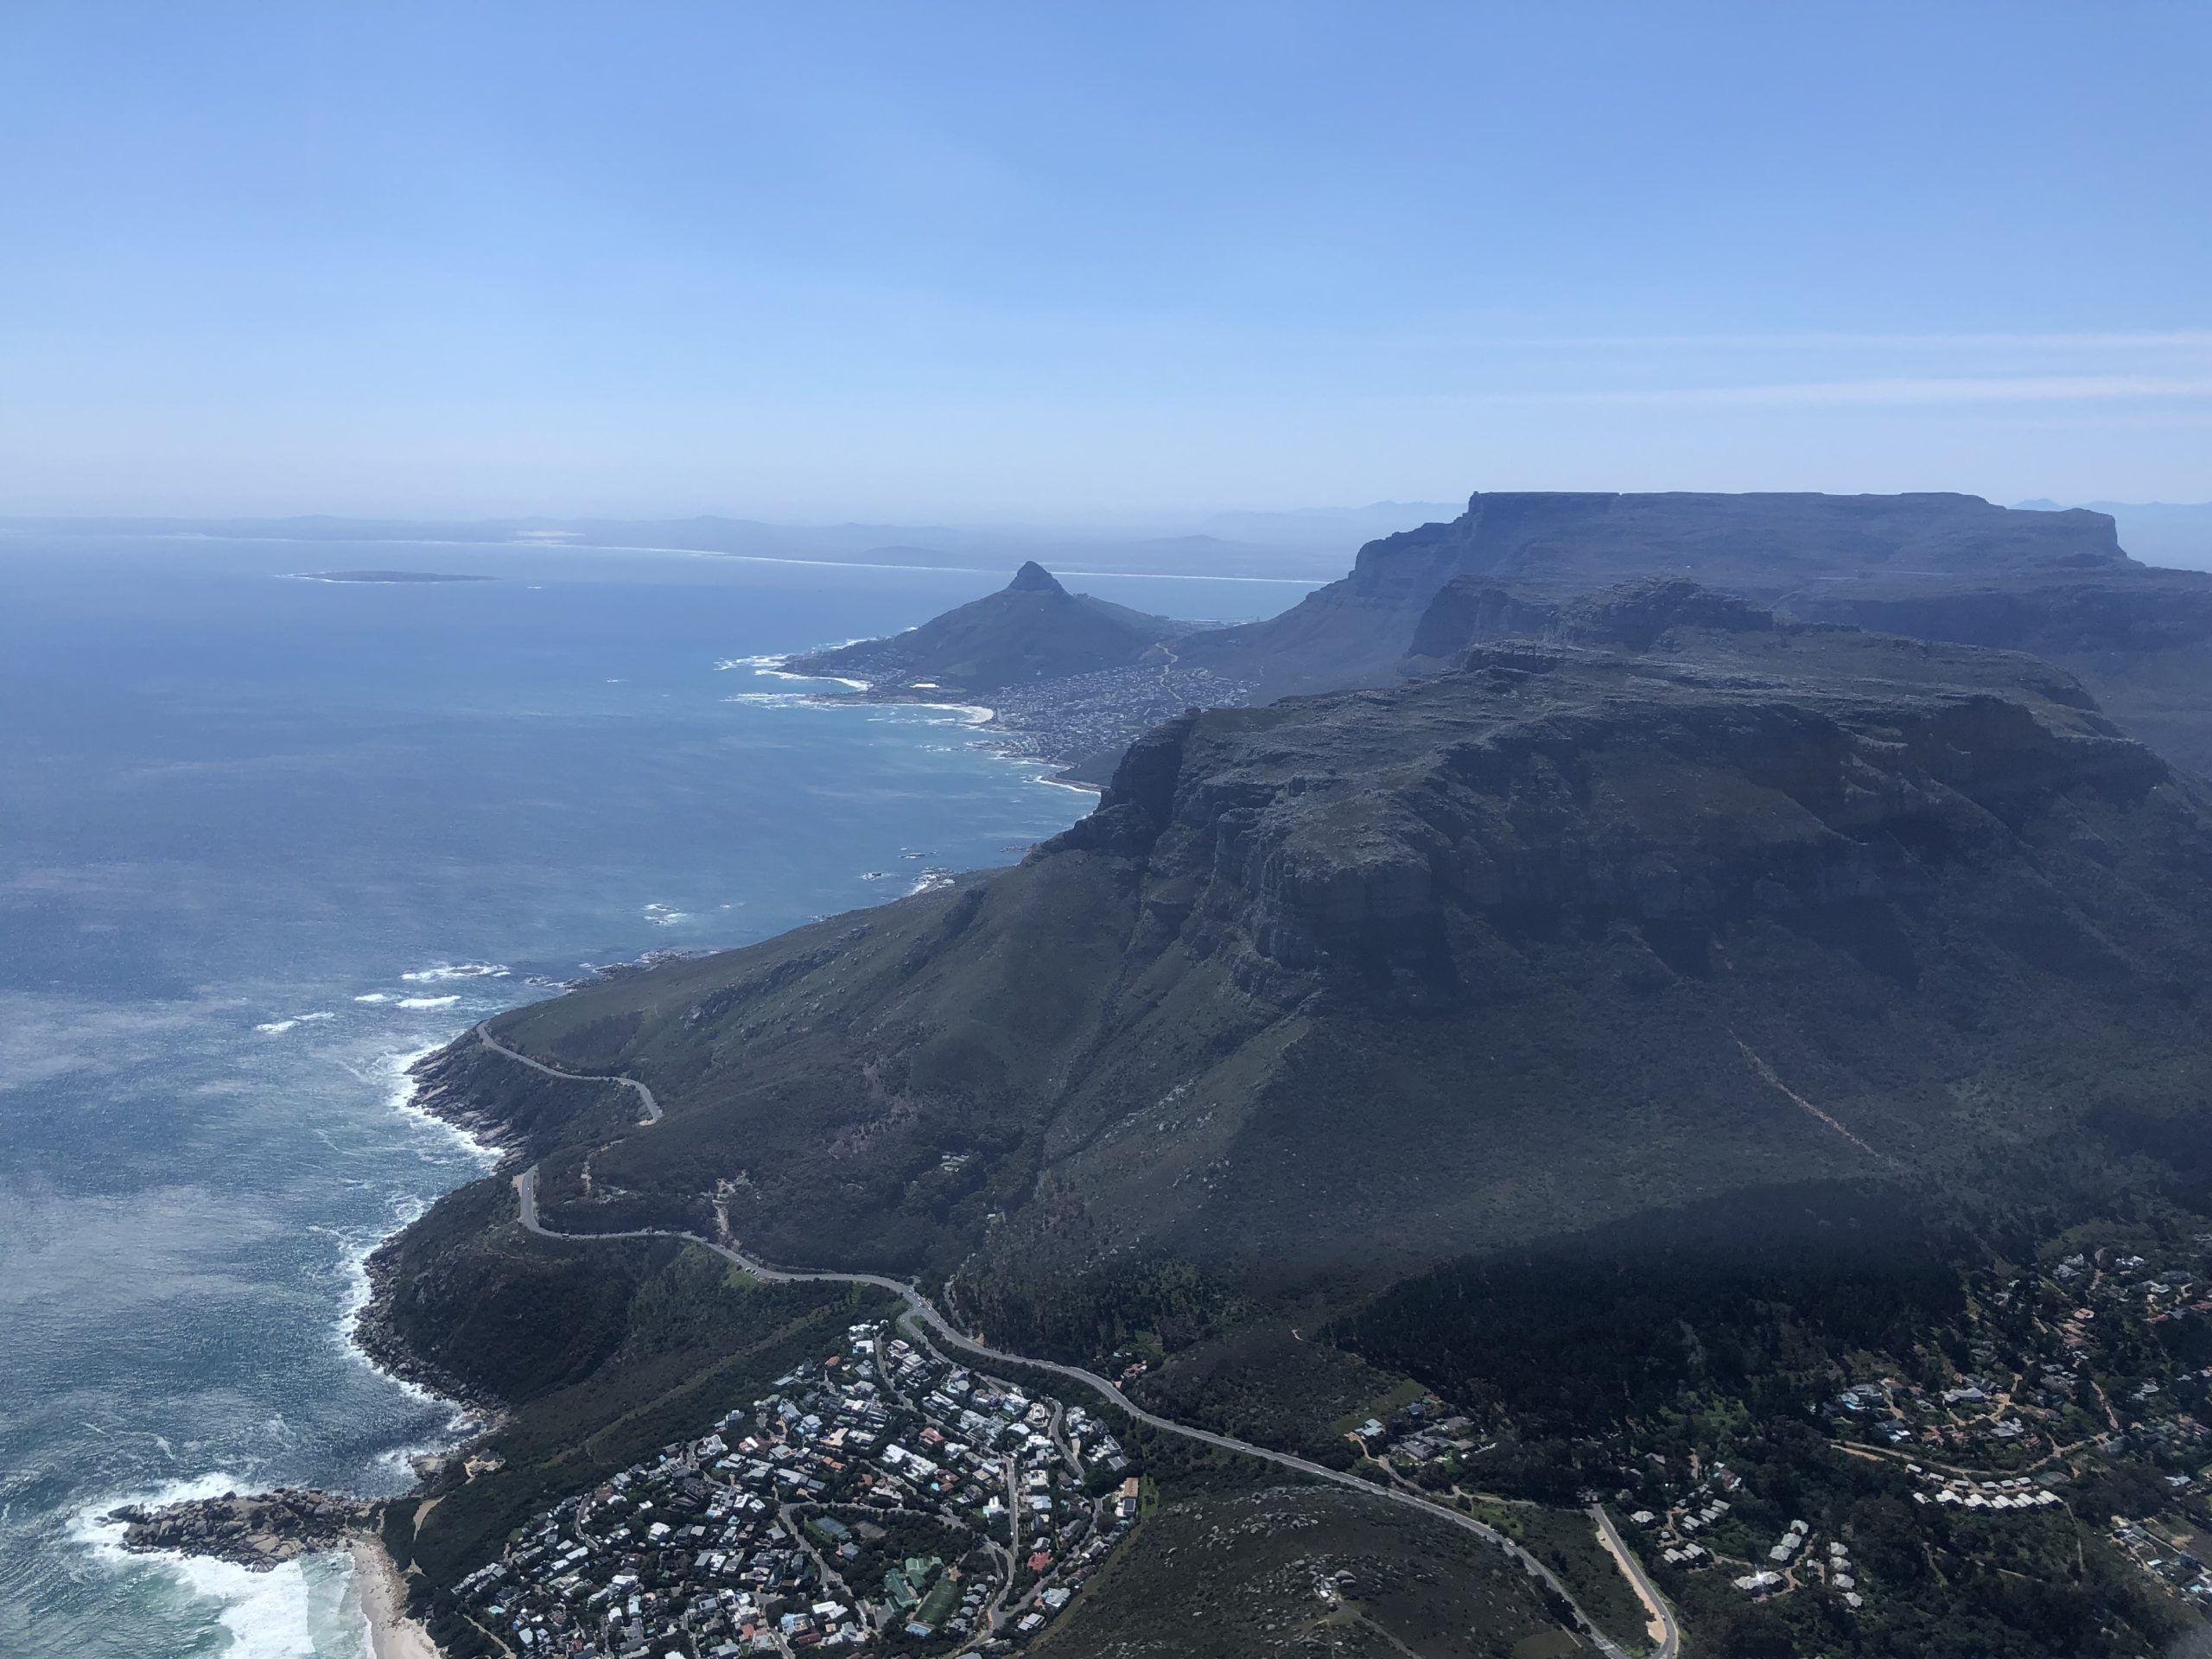 Aerial view of the Cape Peninsula in South Africa